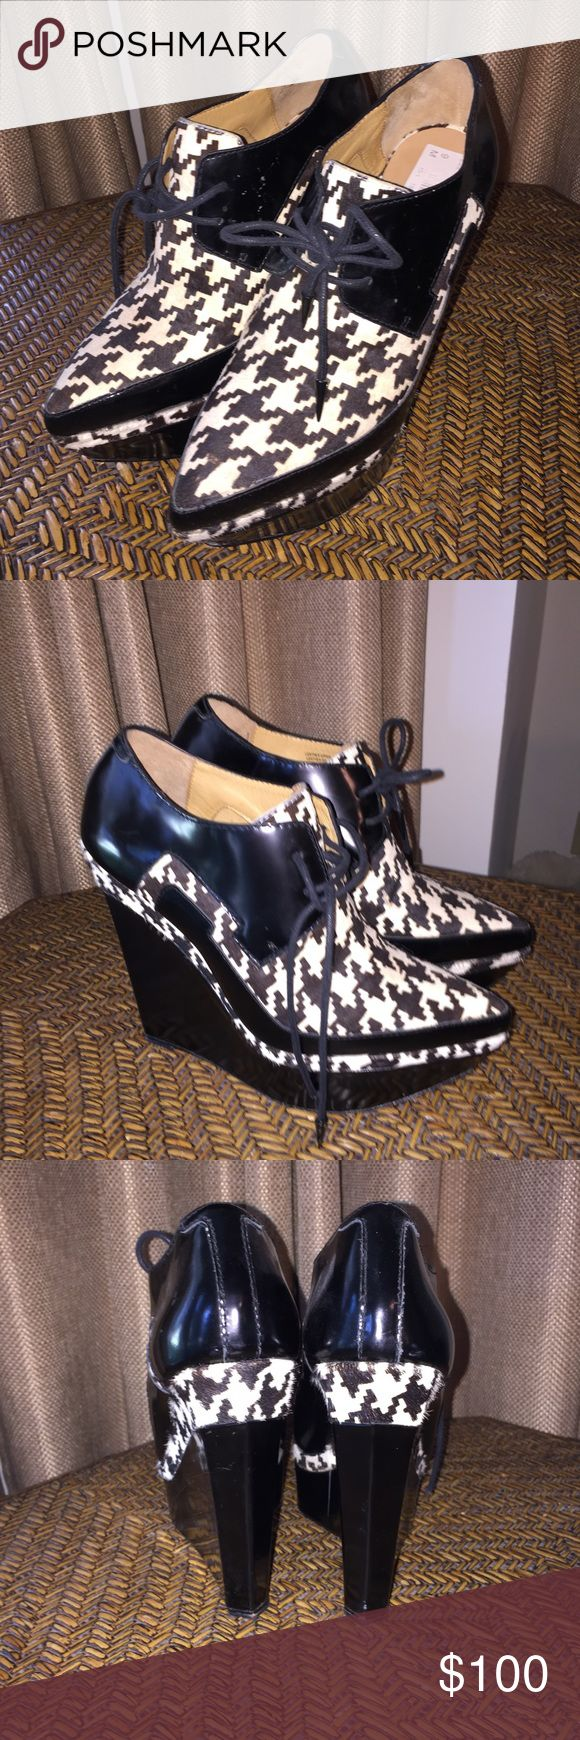 Black and White Lace up platform LAMB Black and white herringbone lace up platforms. Lightly worn. Beautiful condition. LAMB Shoes Platforms